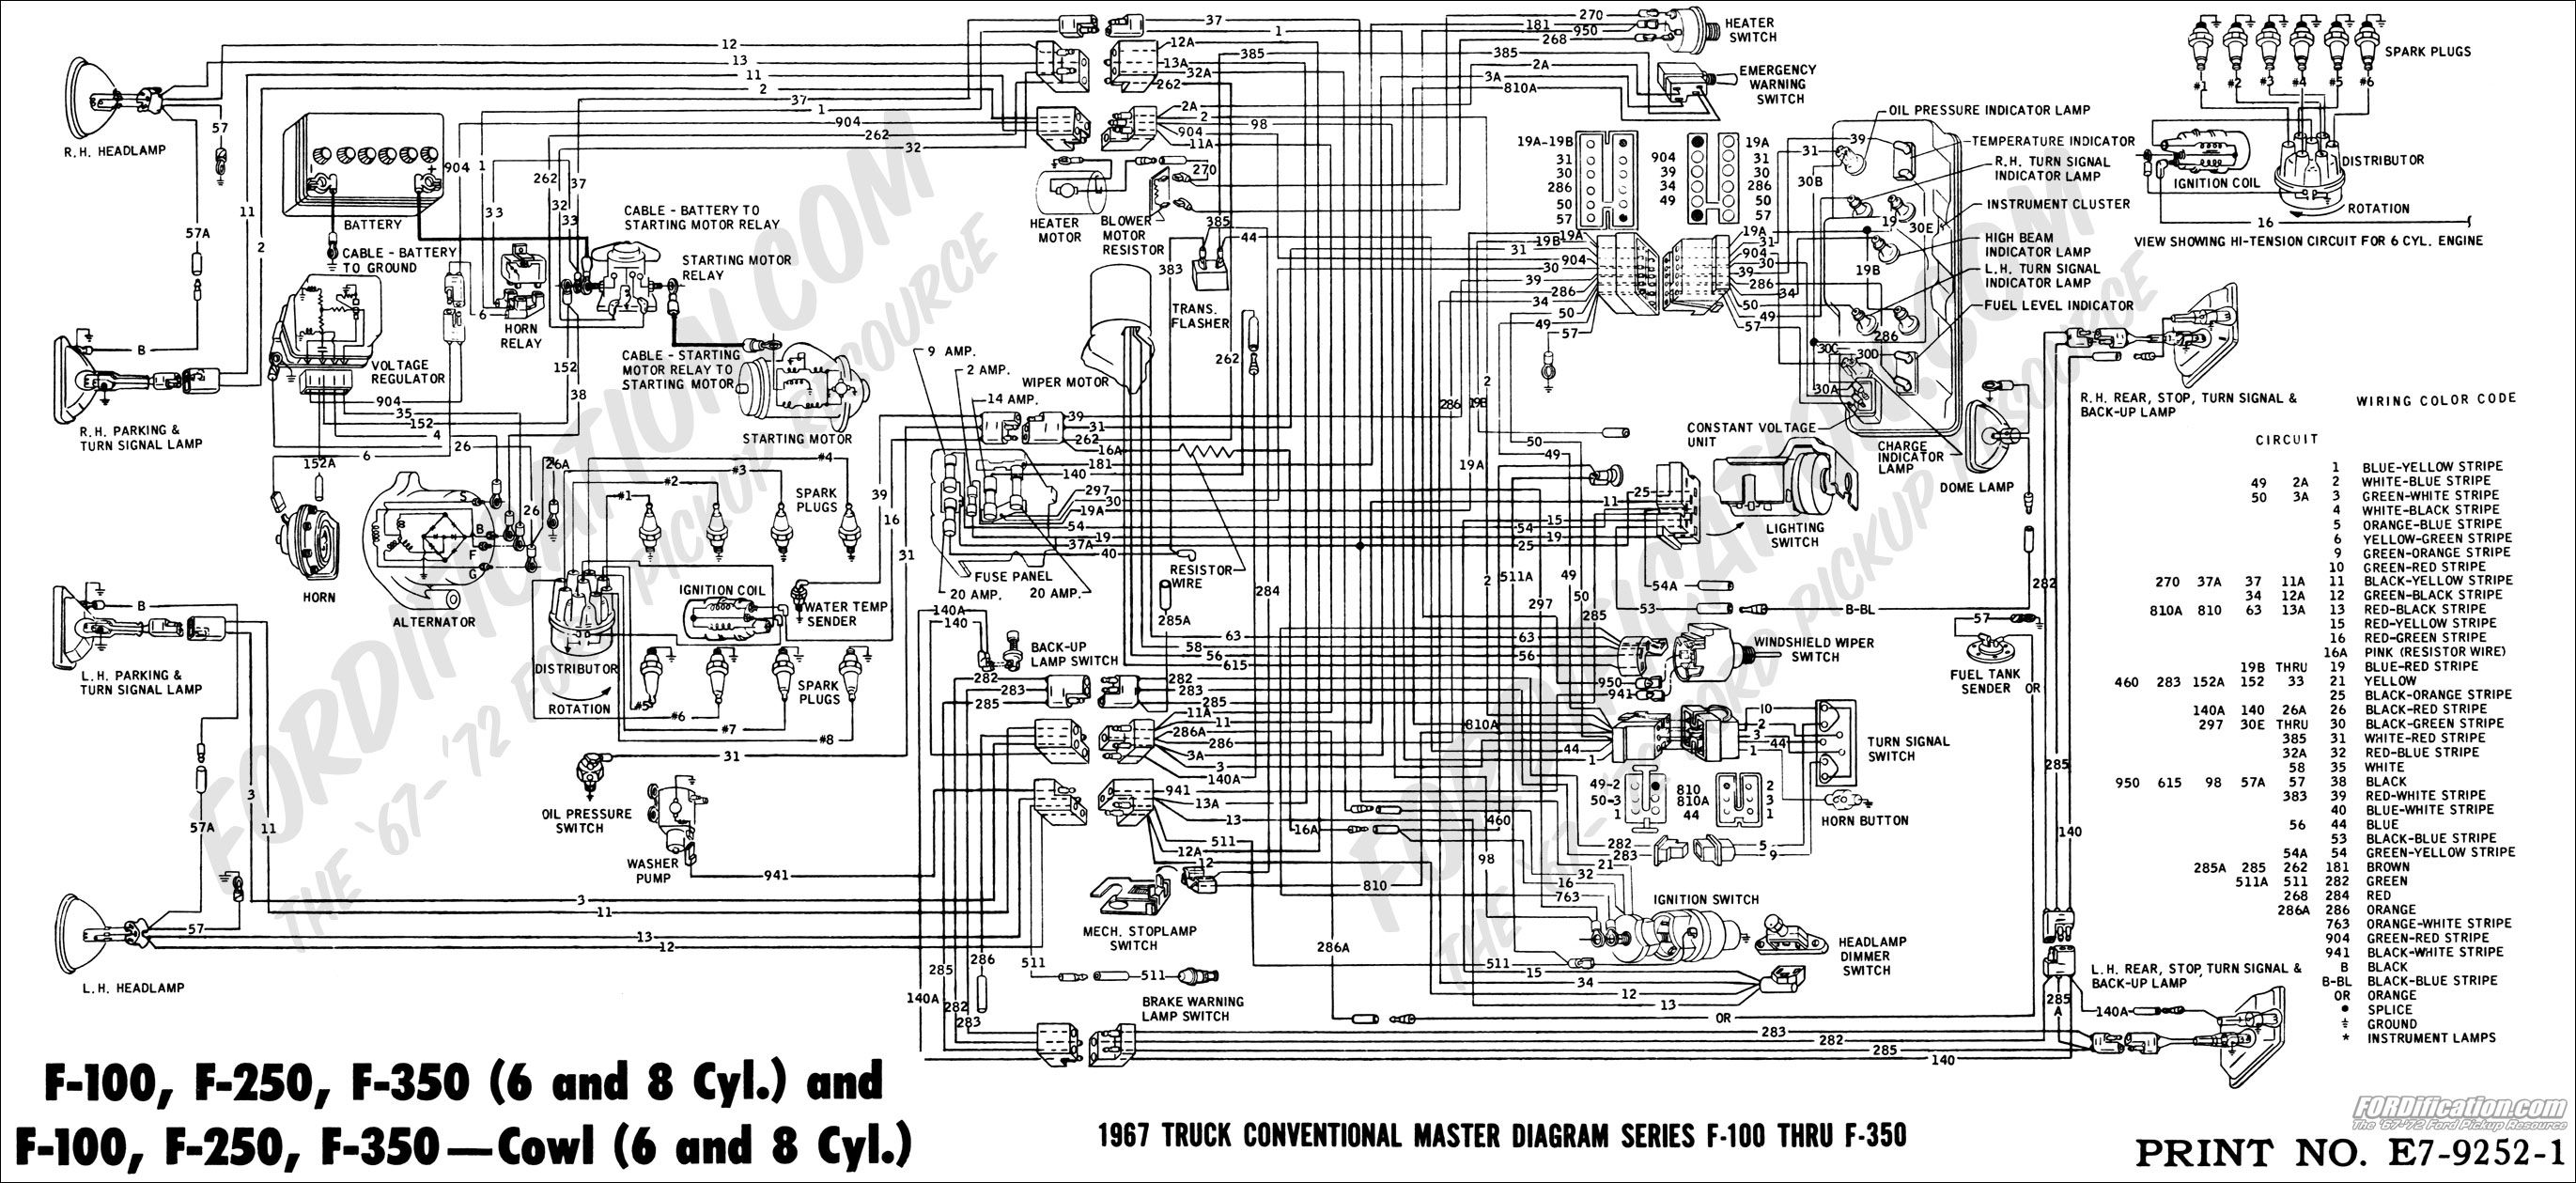 8e608320d8e6c71ff5bbdb2efdd7ada1 ford truck technical drawings and schematics section h wiring Ford E 350 Wiring Diagrams at eliteediting.co